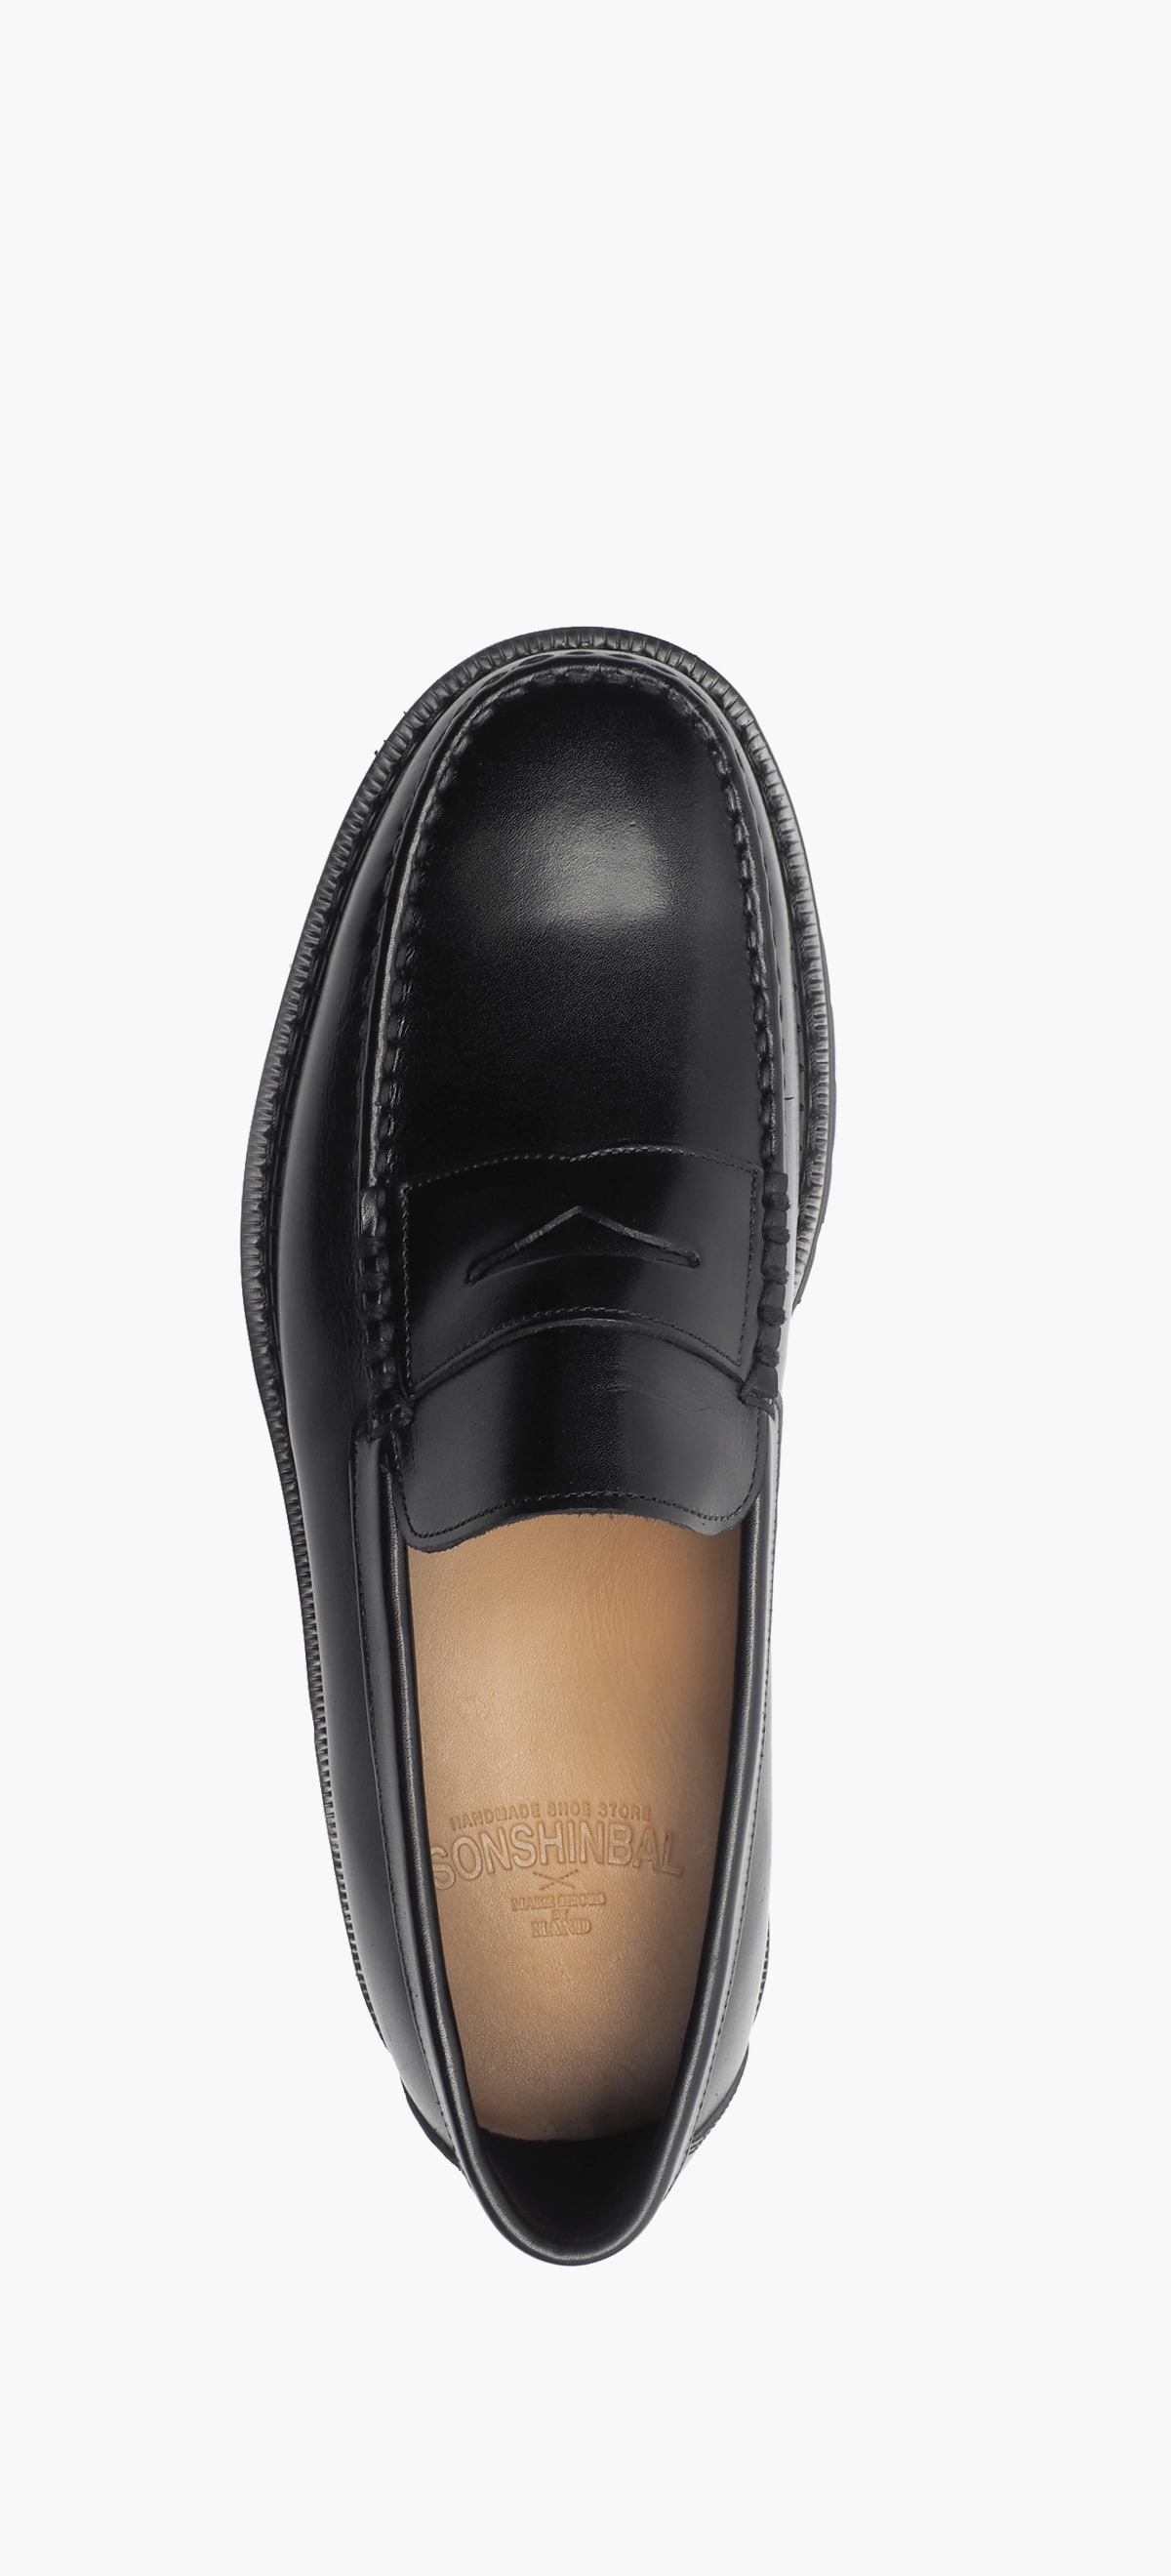 Penny Loafer 8012-42 Black Kip